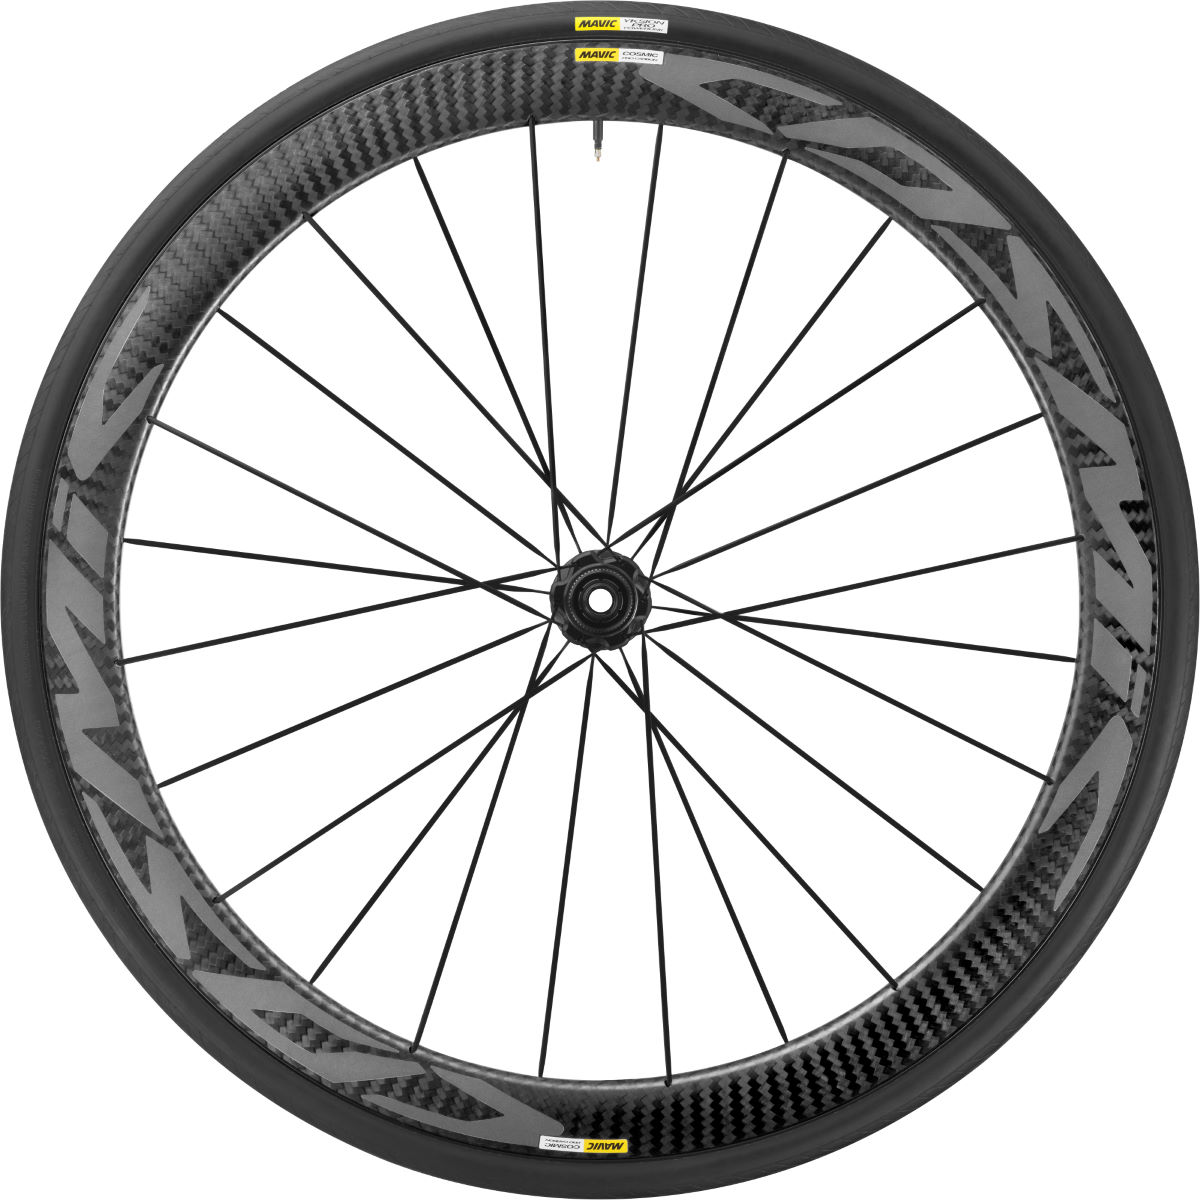 Rear wheel Mavic Cosmic Pro Carbon Disc (with cover) - Competition wheels